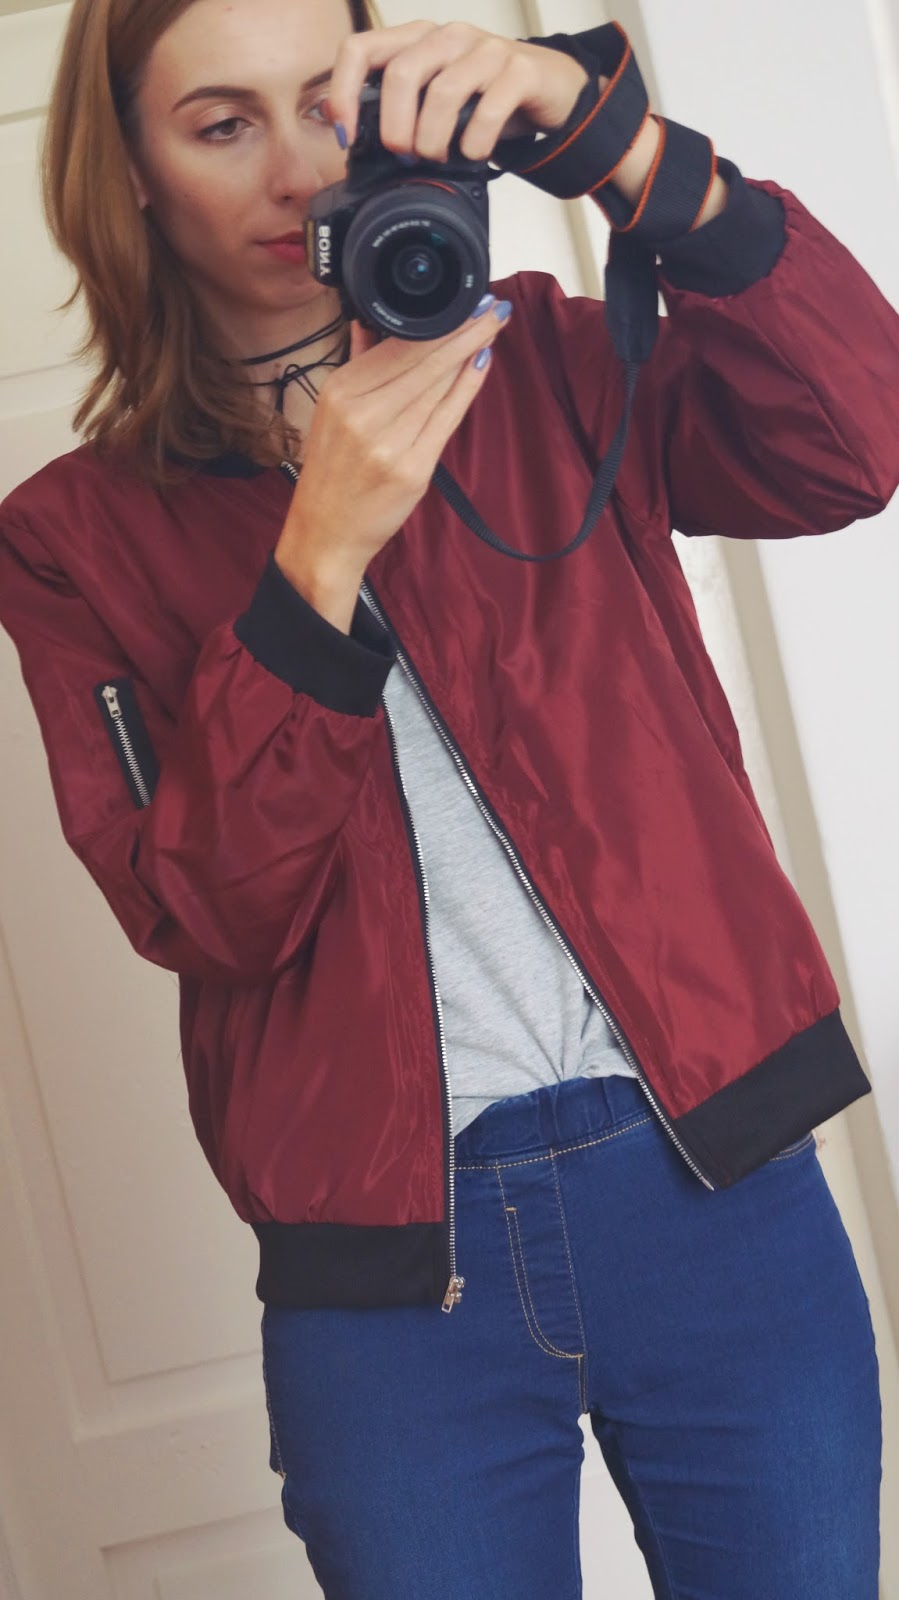 Bomber jacket and choker - www.dresslily.com